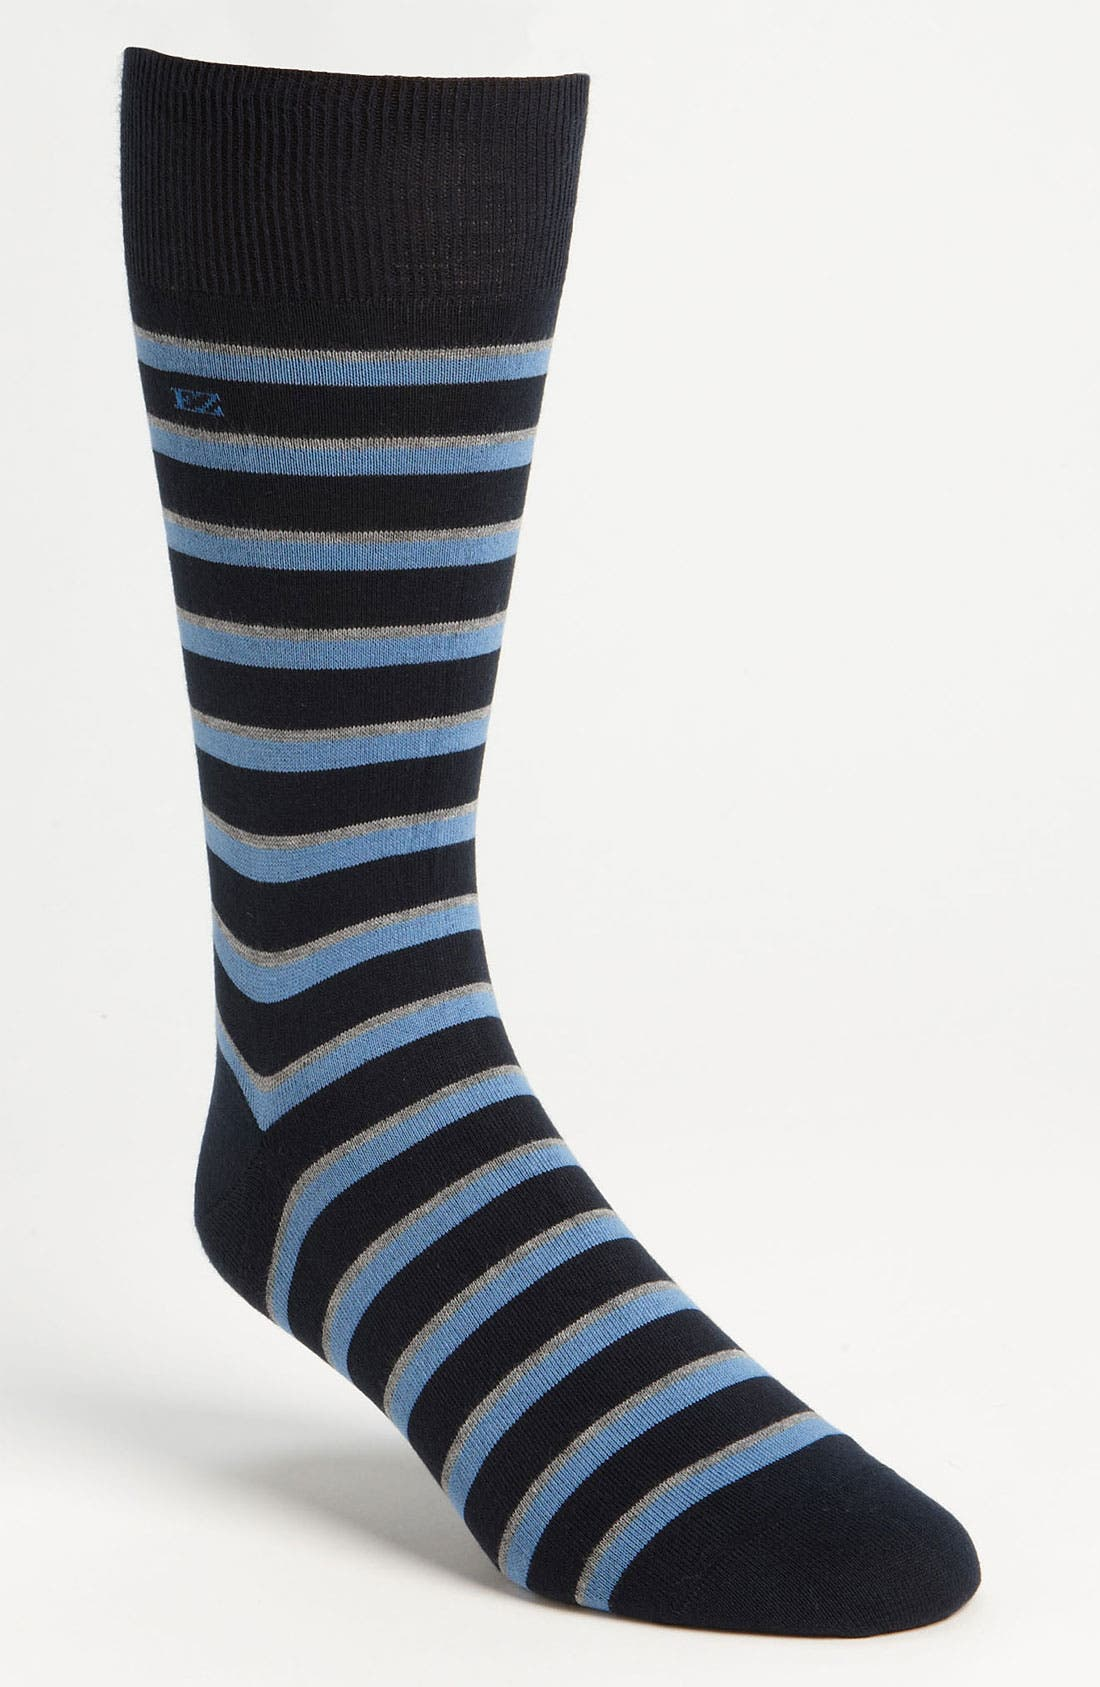 Alternate Image 1 Selected - Ermenegildo Zegna 'Regimentals' Socks